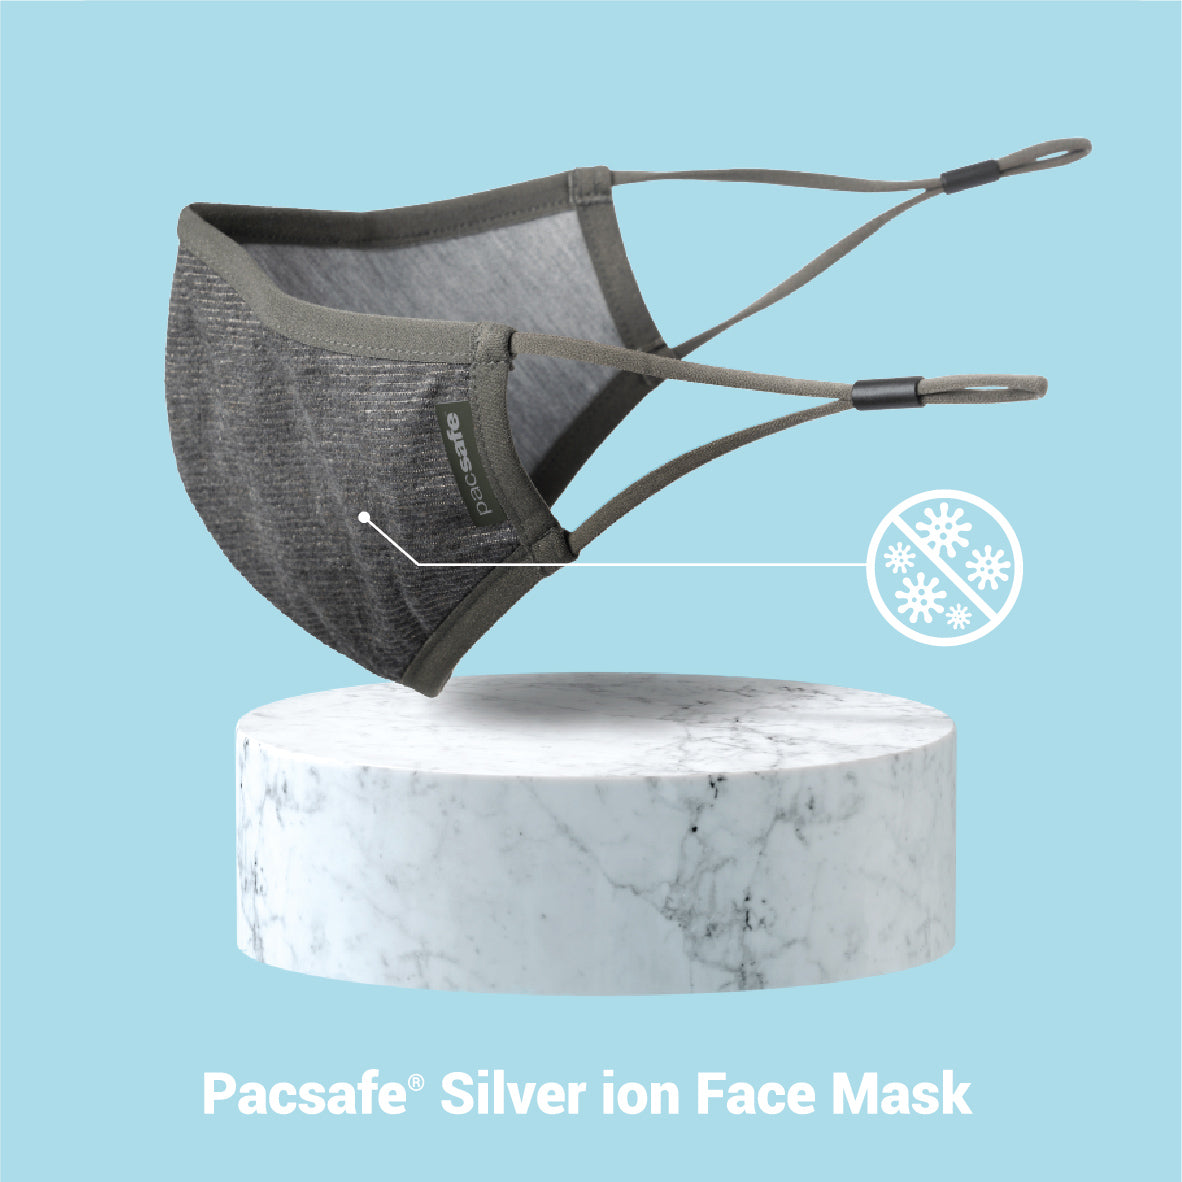 Pacsafe Silver Ion Face Mask - Silver Gray image 2